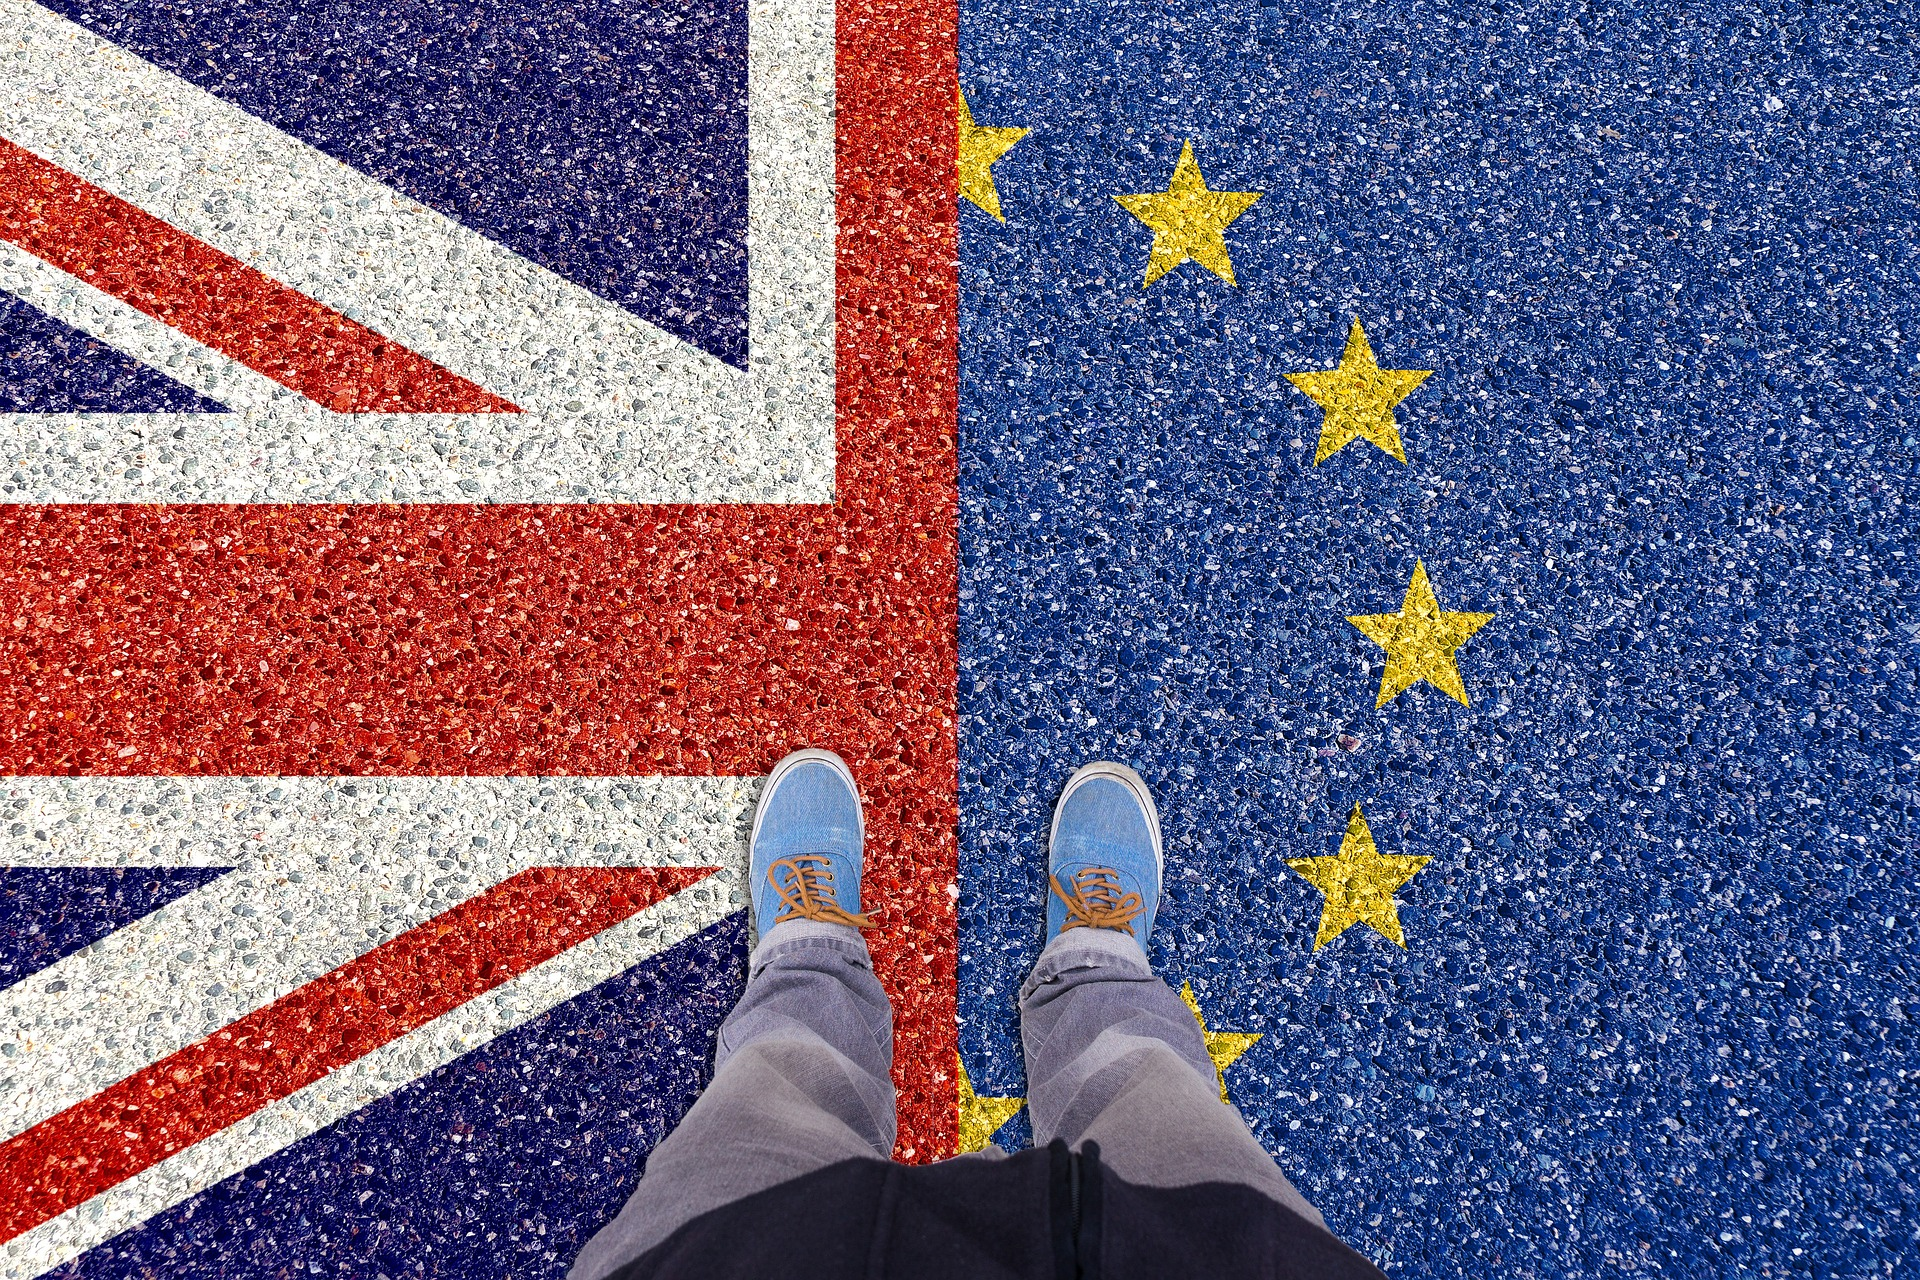 Brexit (Pete Linforth from Pixabay)